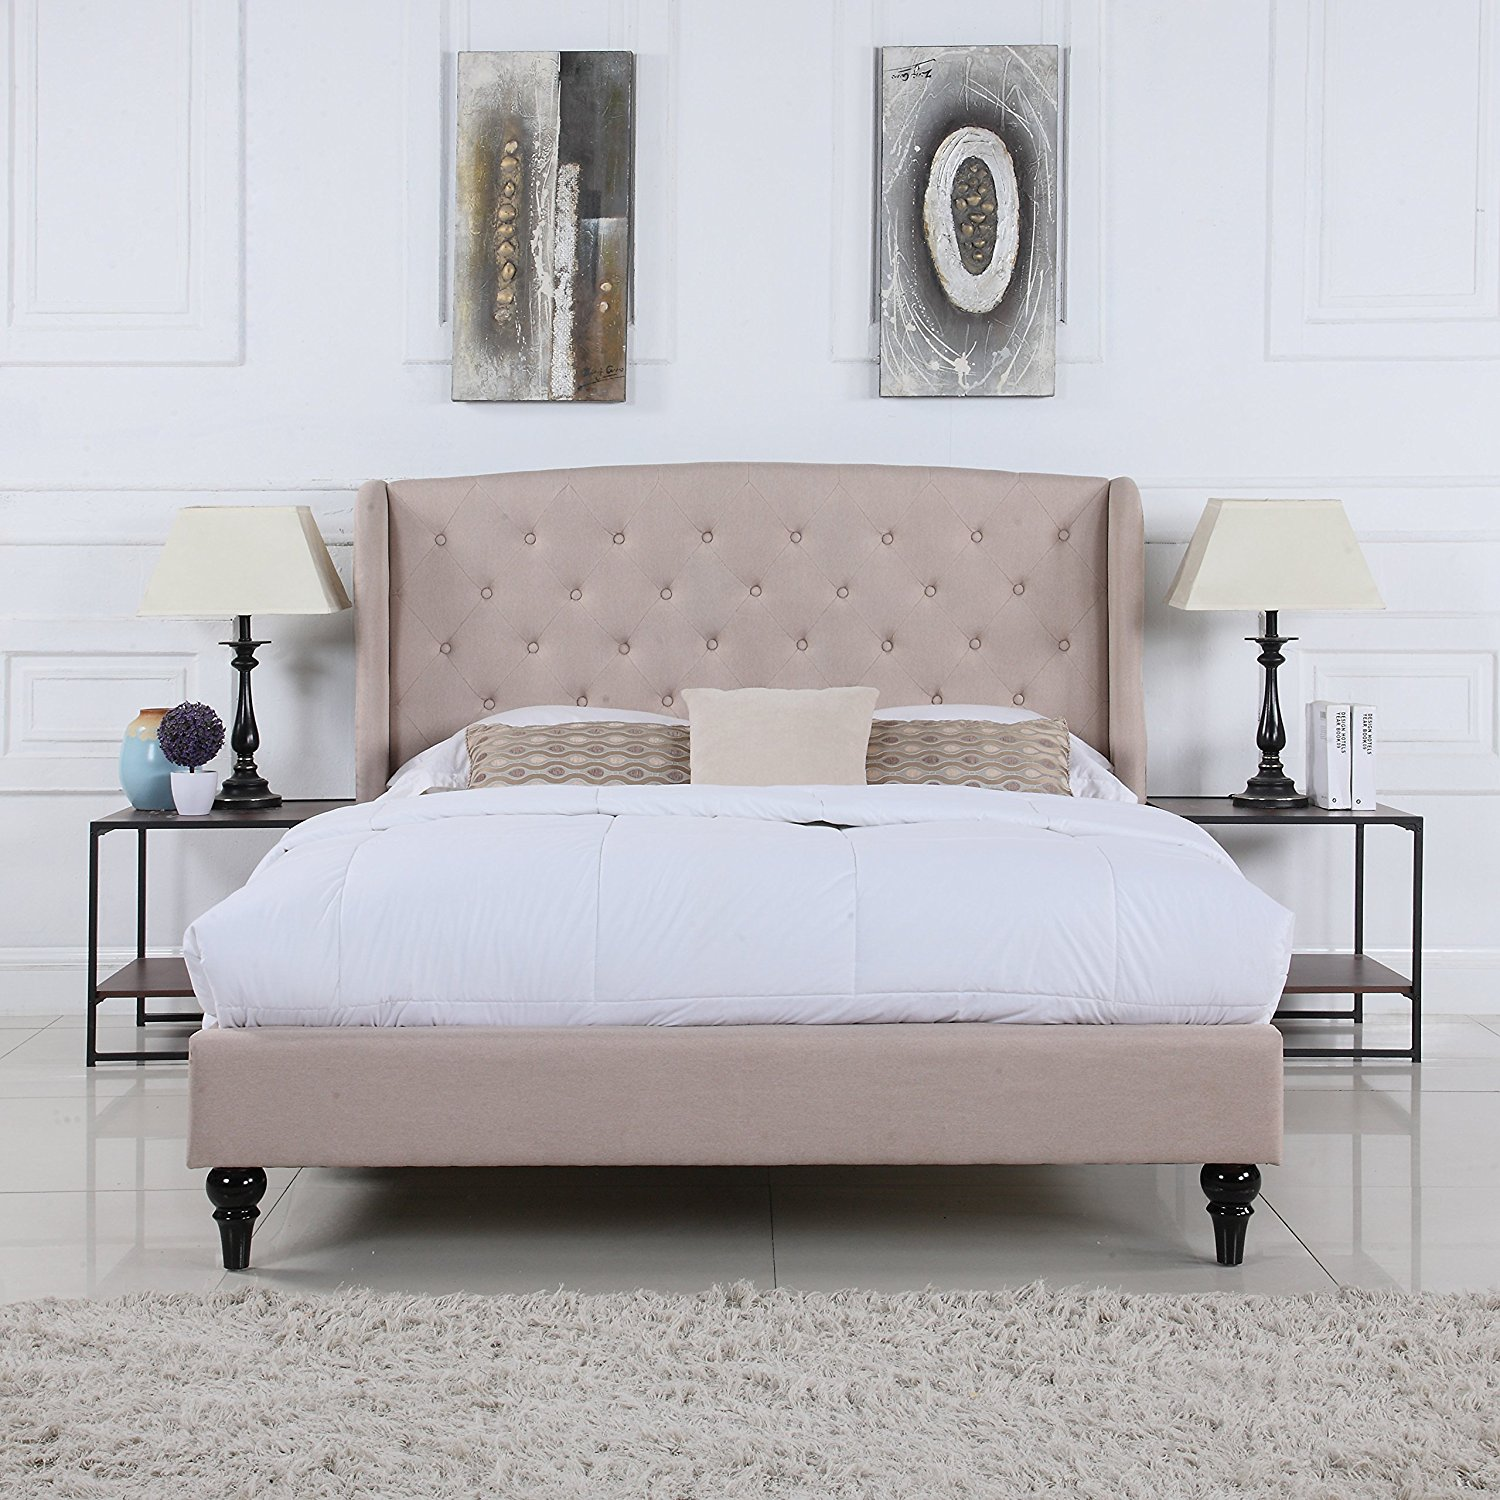 Buy Classic Dark Beige Box Tufted Shelter Bed Frame (Queen) in